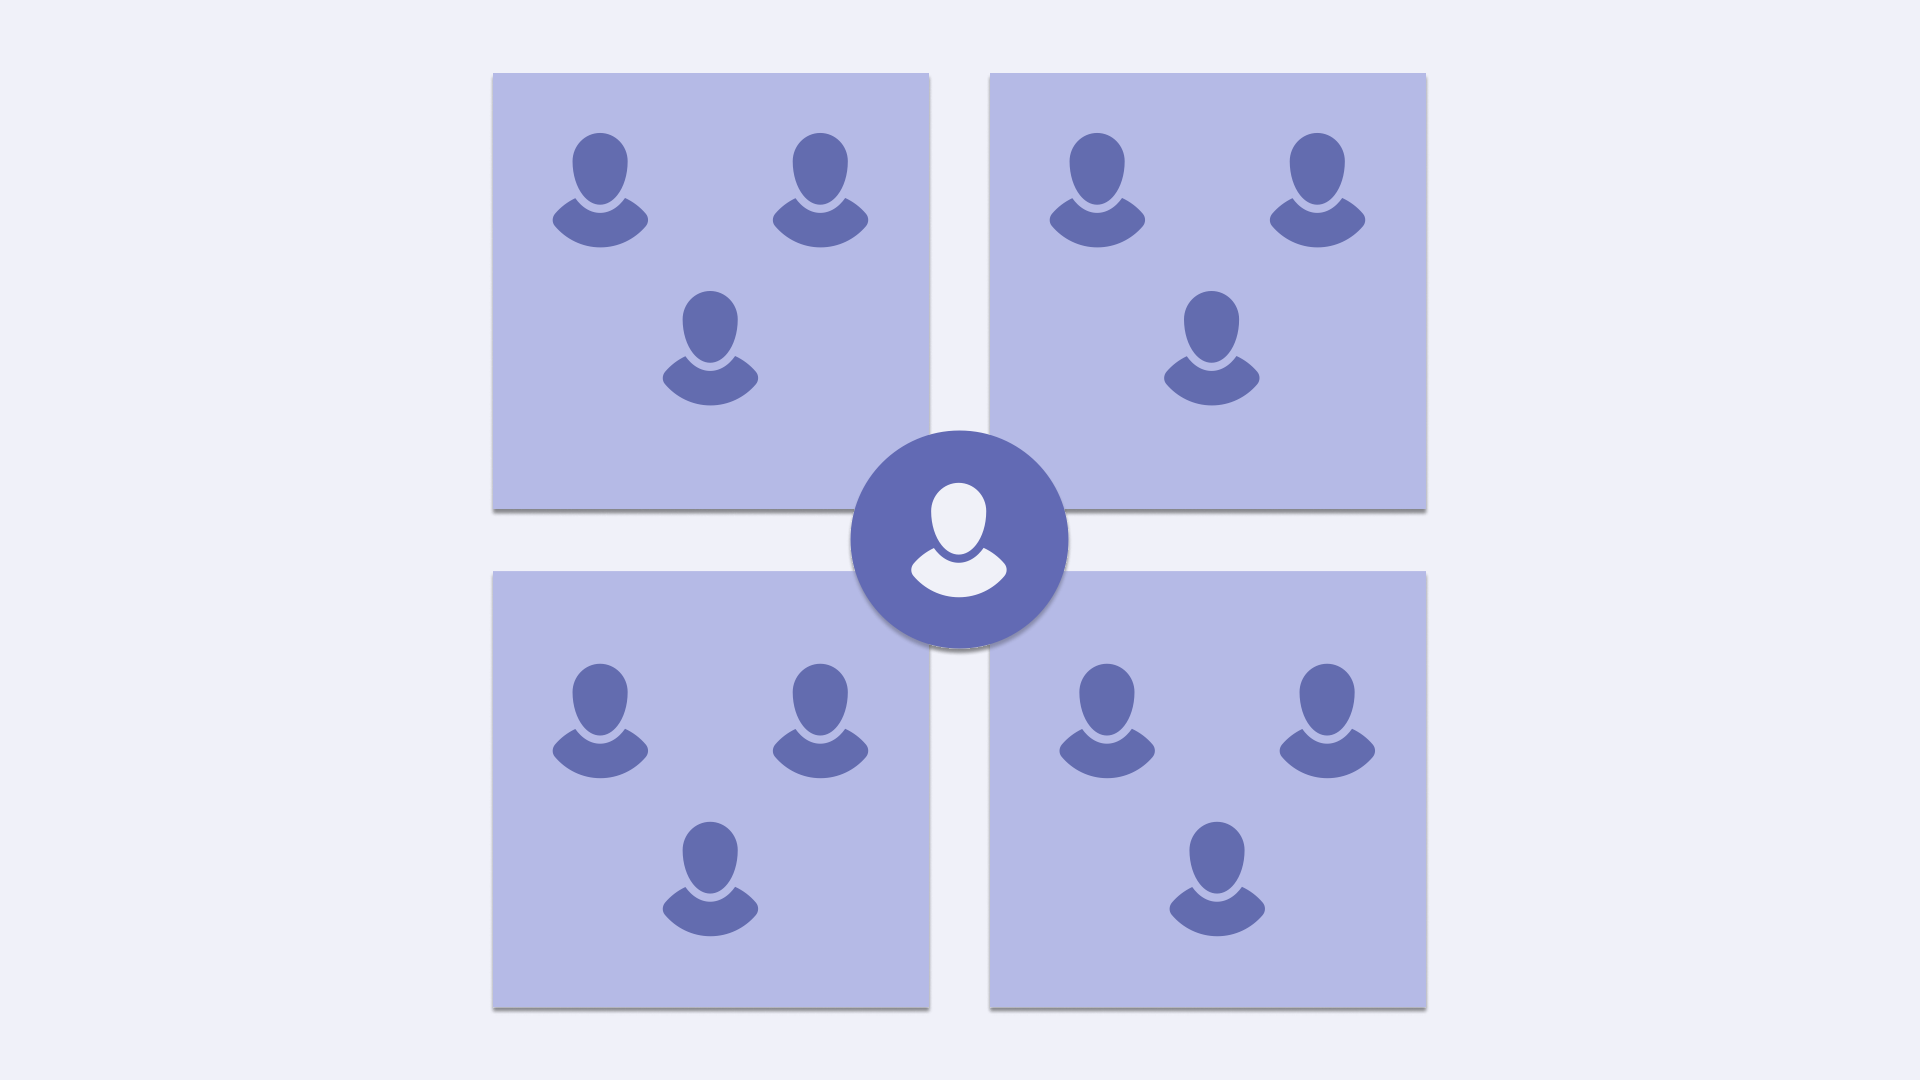 Illustration with icons of people organized into different teams